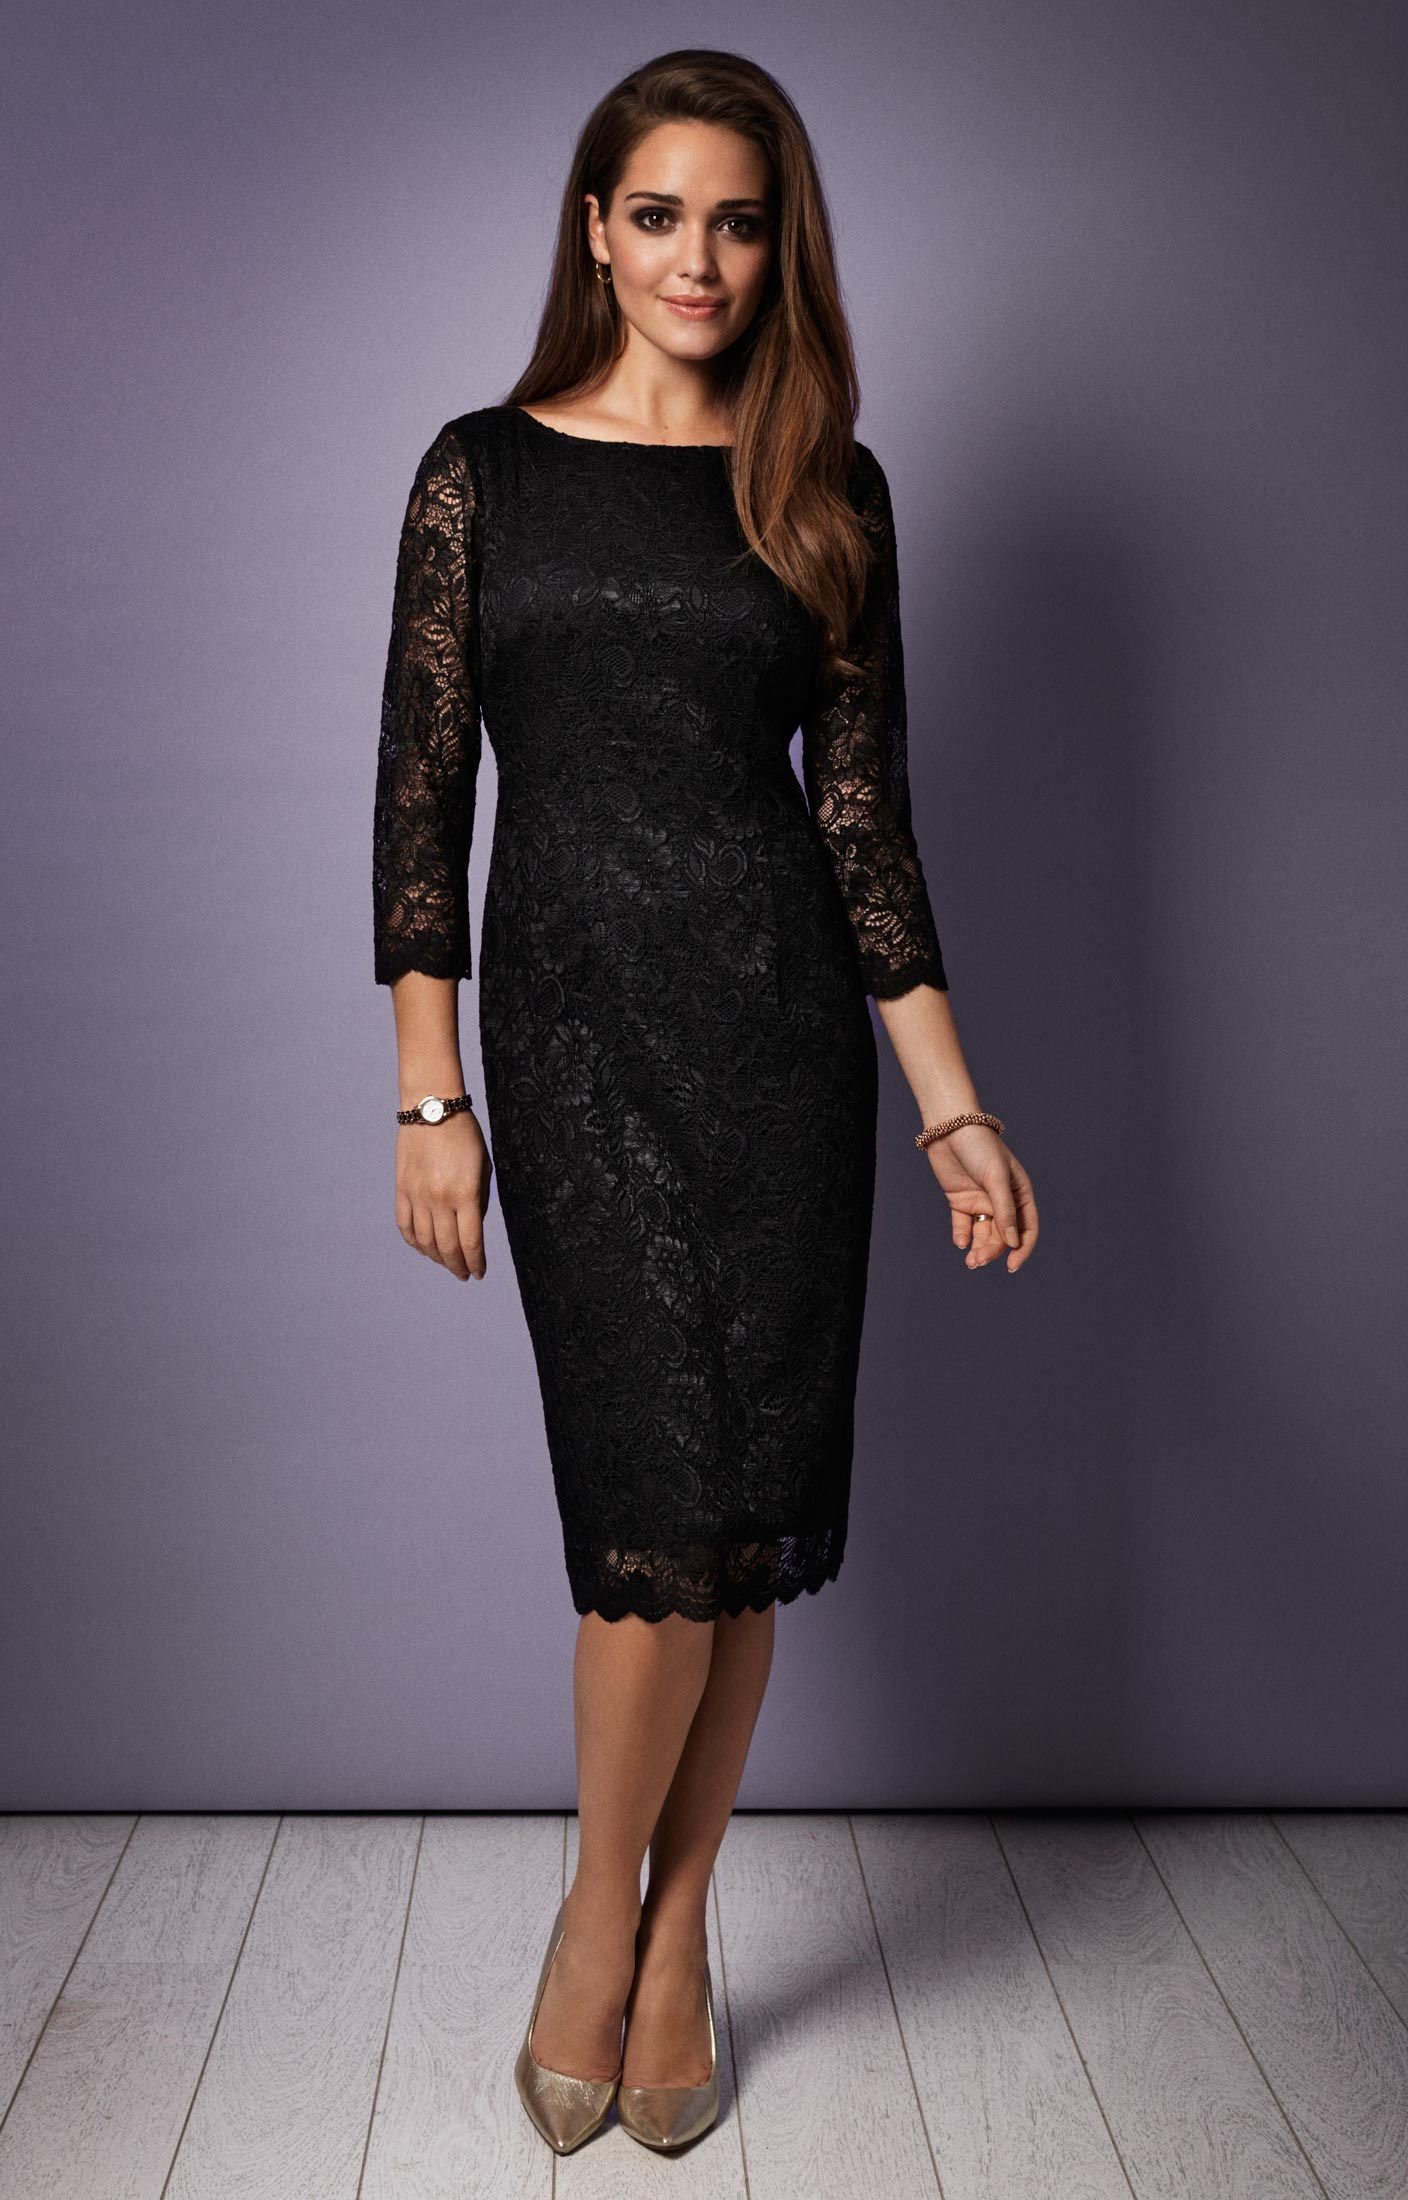 Wedding Occasion Dresses katherine lace occasion dress black evening dresses by alie street